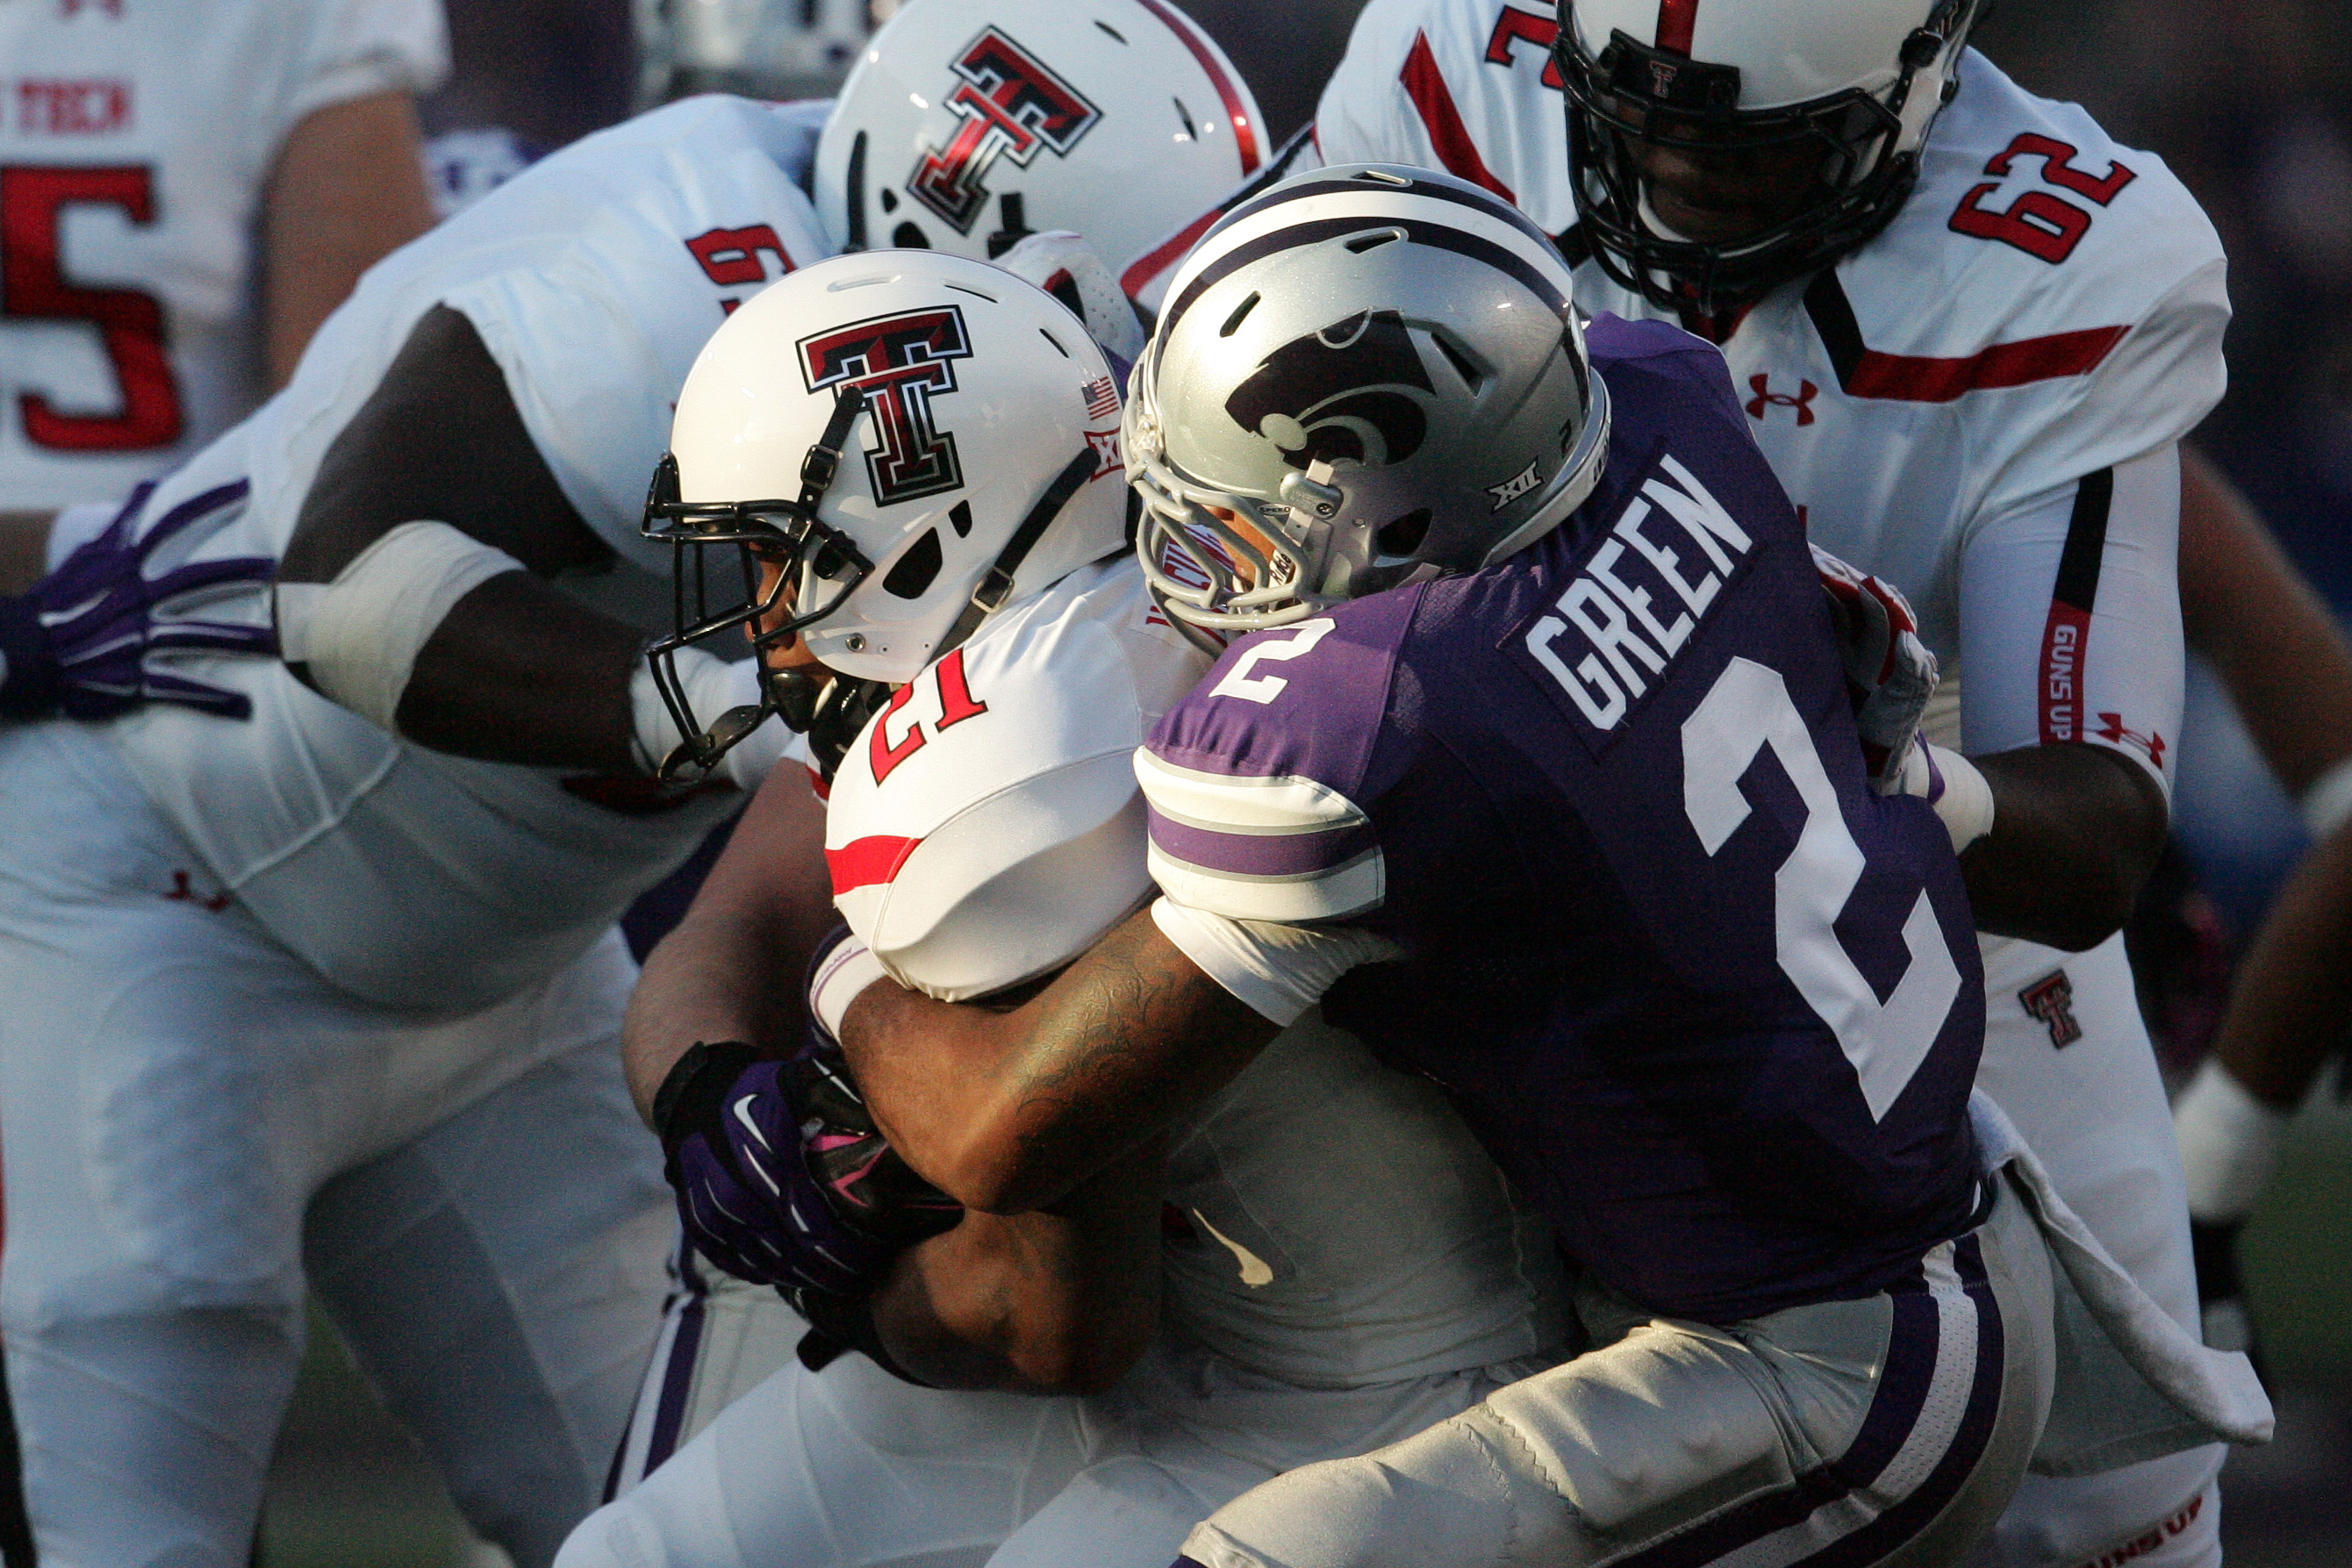 Travis Green was the last K-State defensive back to wear No. 2. But Green played safety, whereas the man stepping into that jersey, D.J. Reed, will play cornerback.